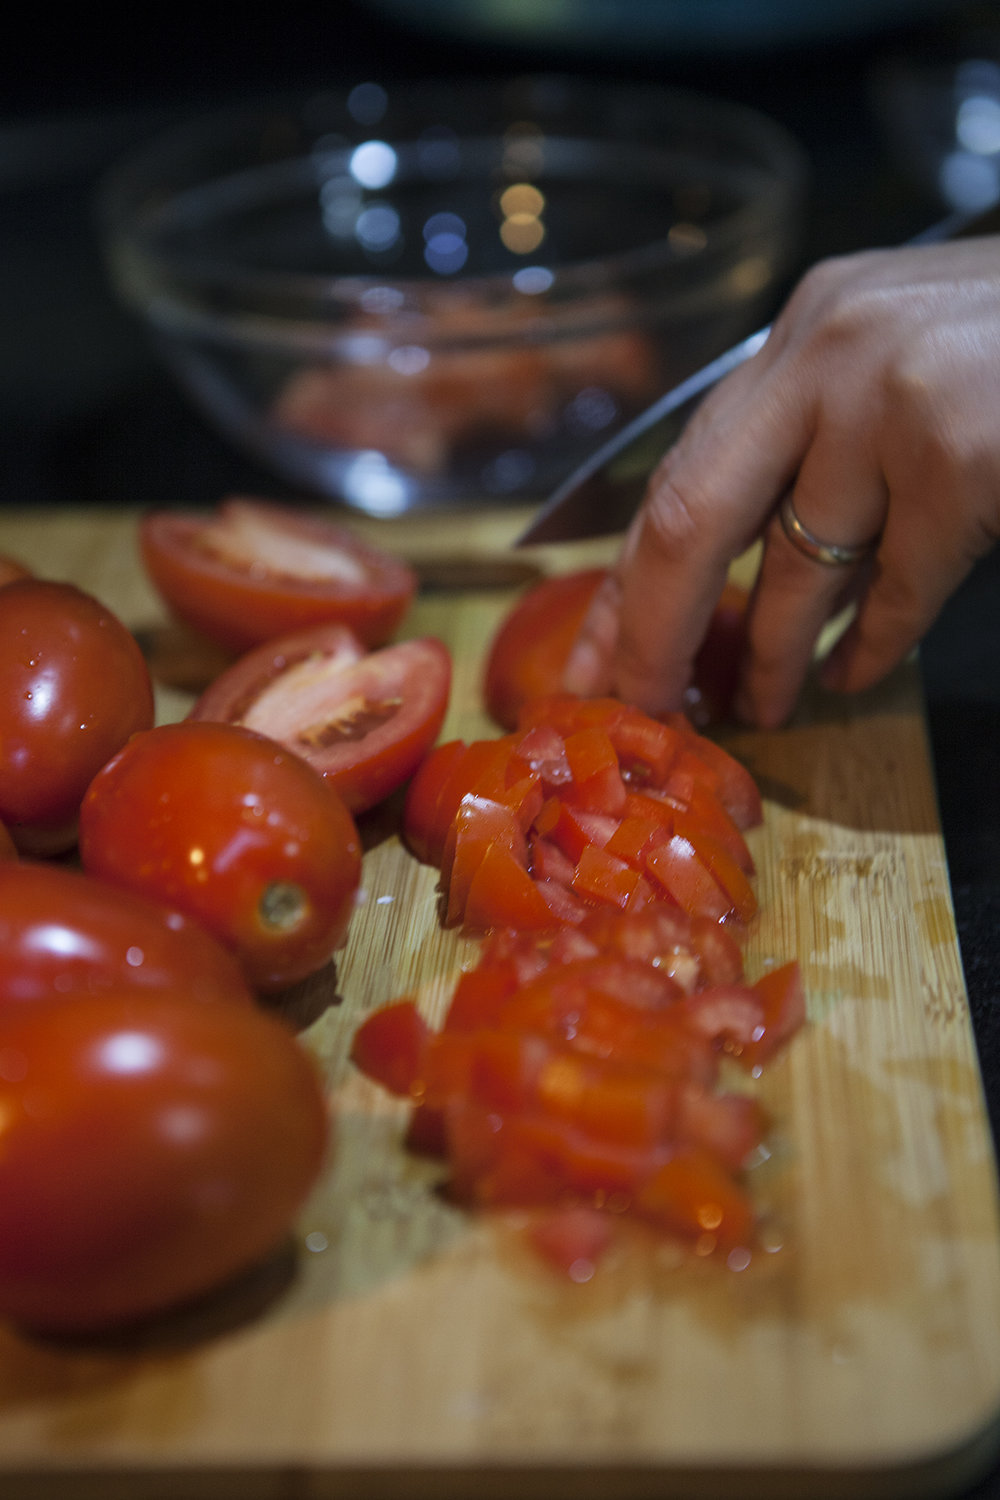 sauce slicing tomatoes.jpg